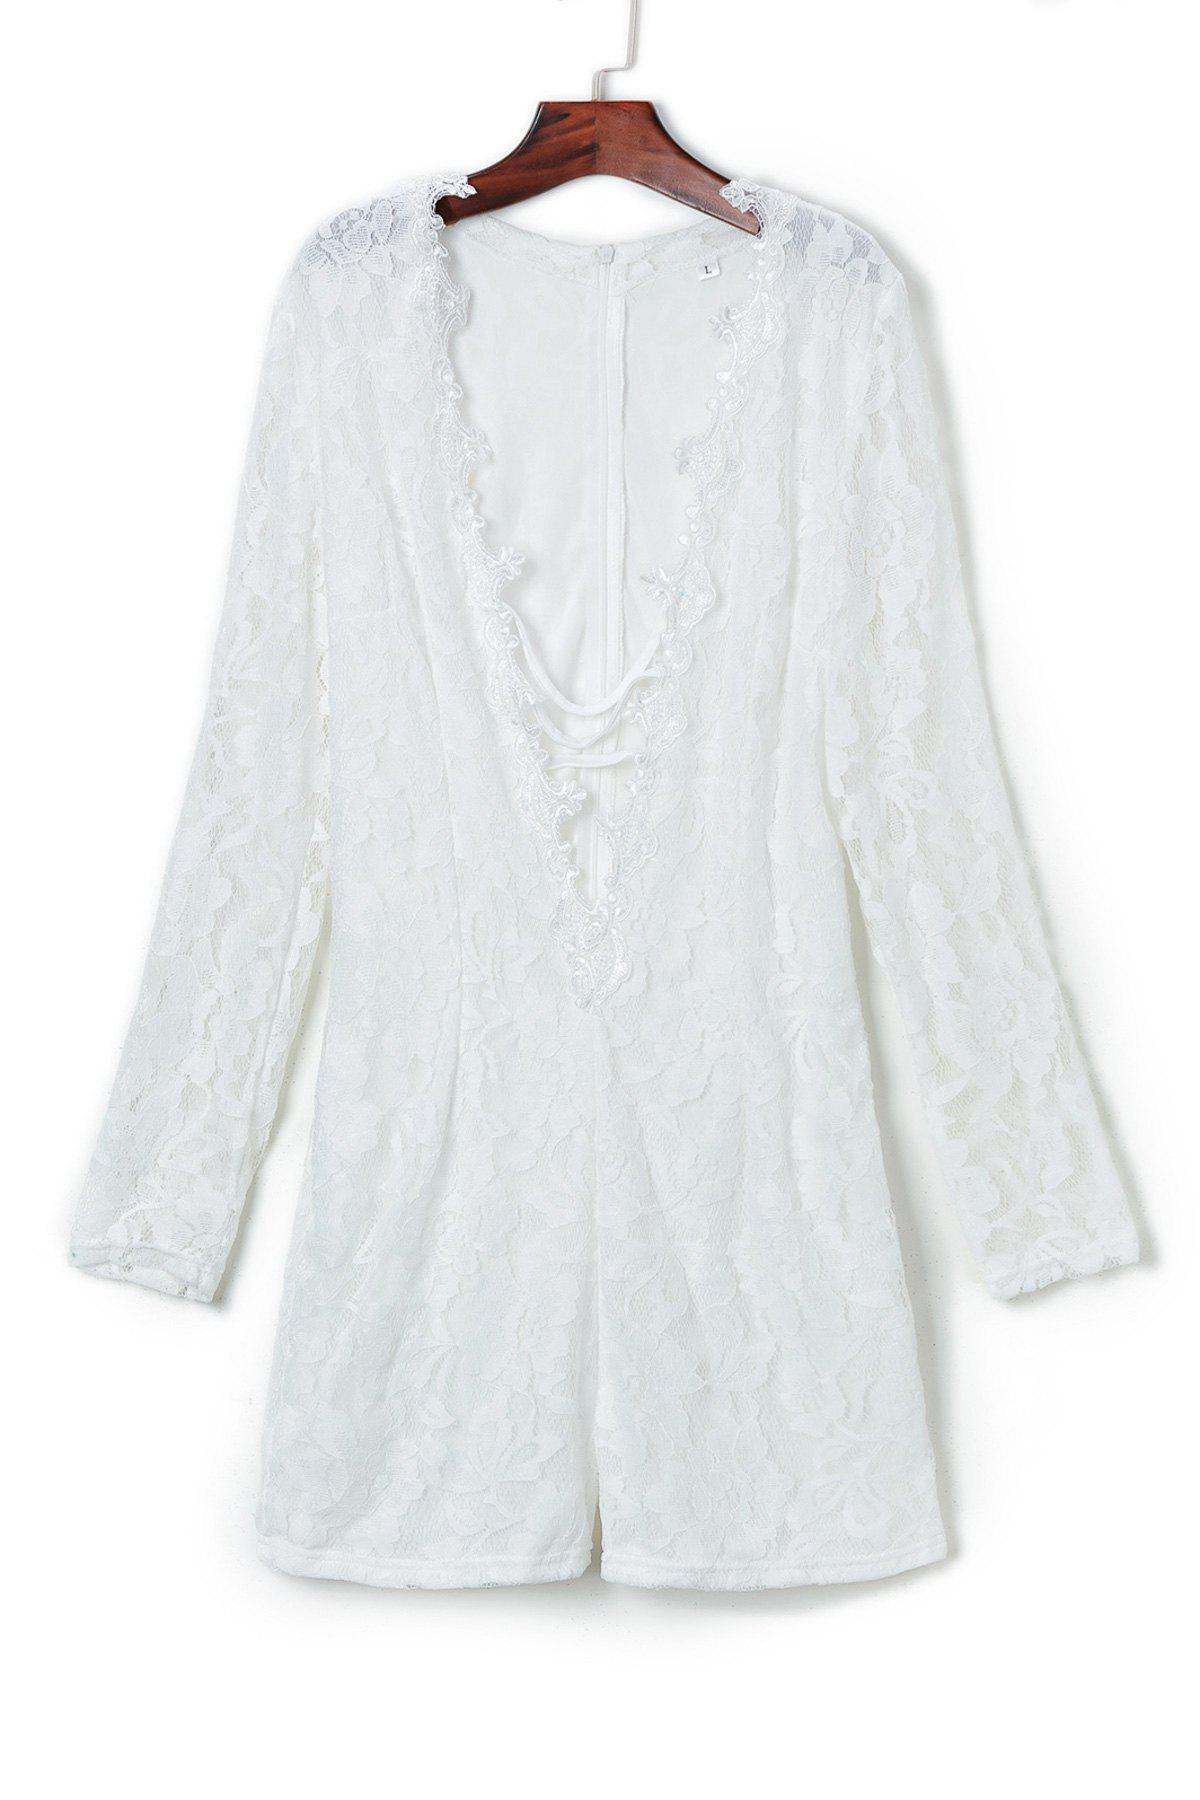 Sexy Long Sleeve Plunging Neck Solid Color Lace Women's Romper - WHITE S